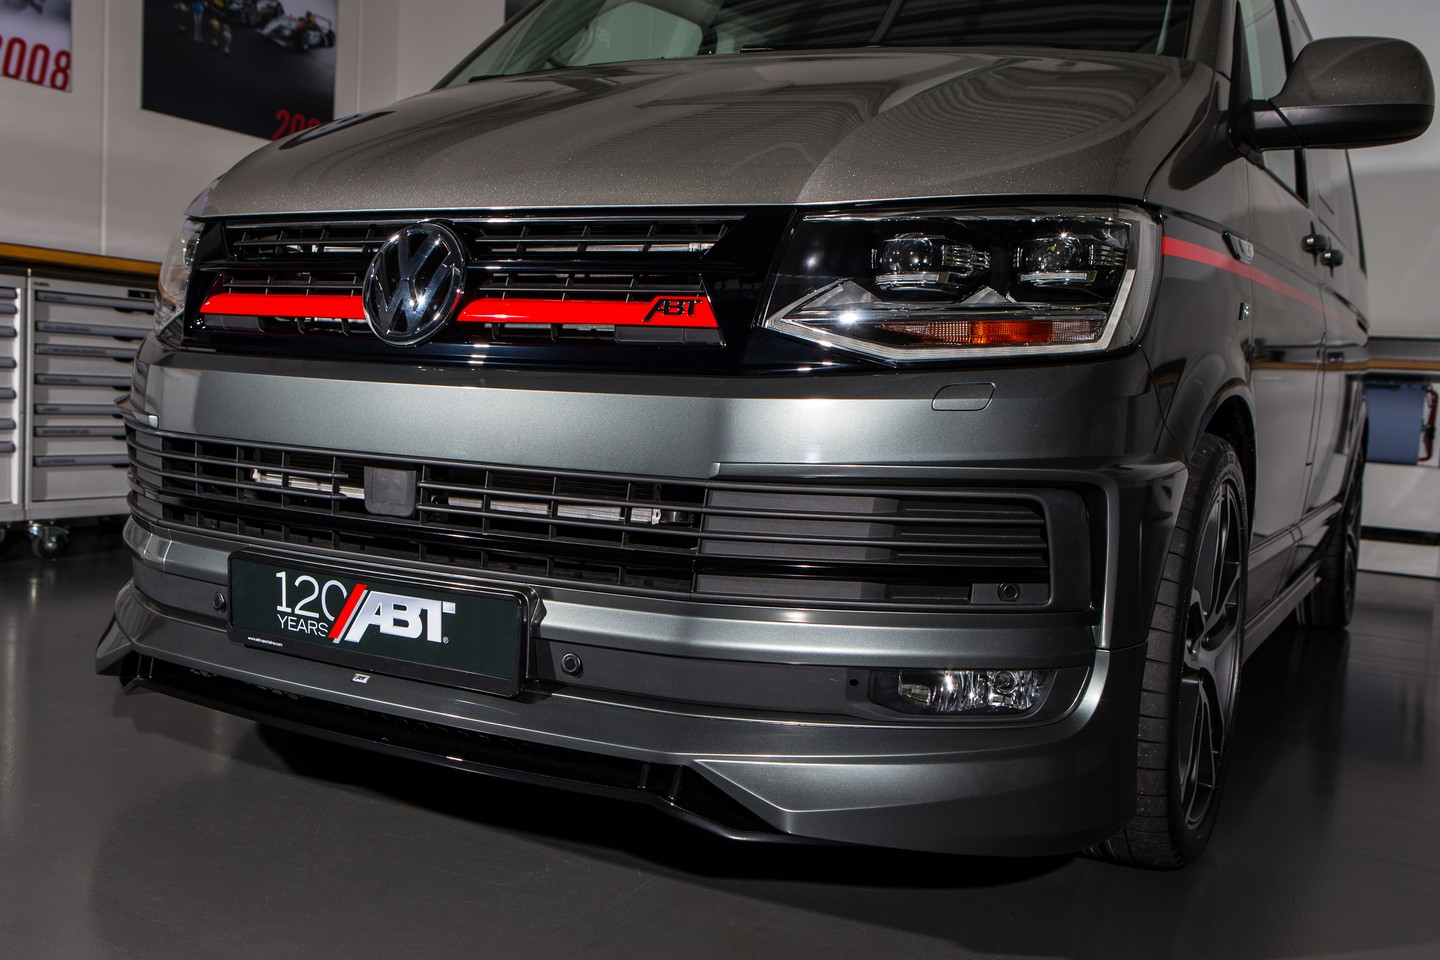 ABT Makes Coolest Volkswagen T6 Tuning Project For Geneva